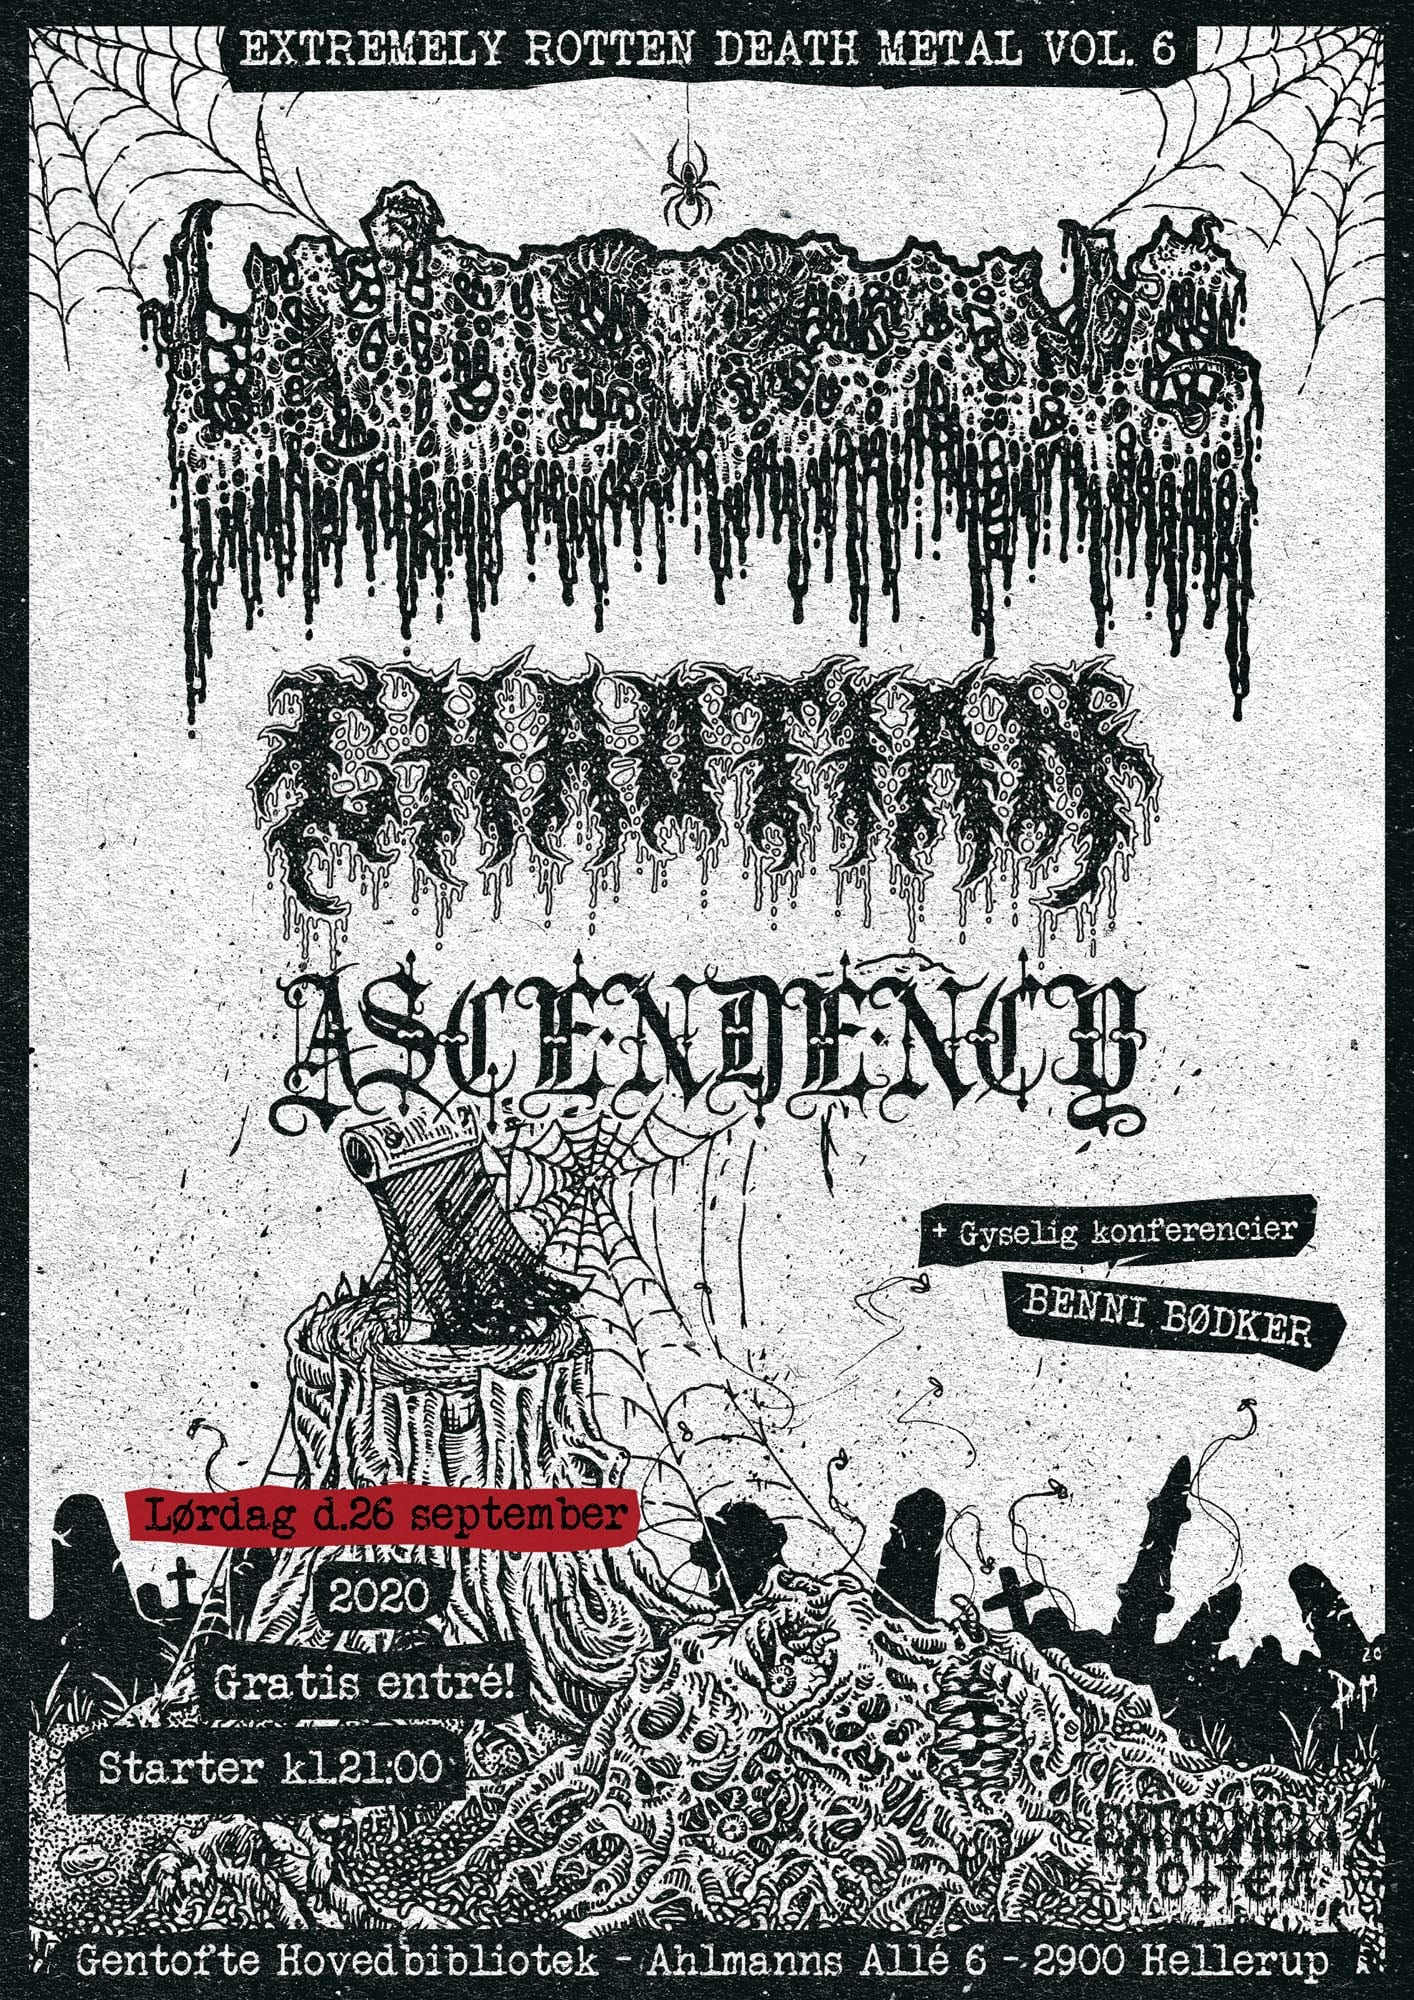 EXTREMELY ROTTEN DEATH METAL VOL. 6